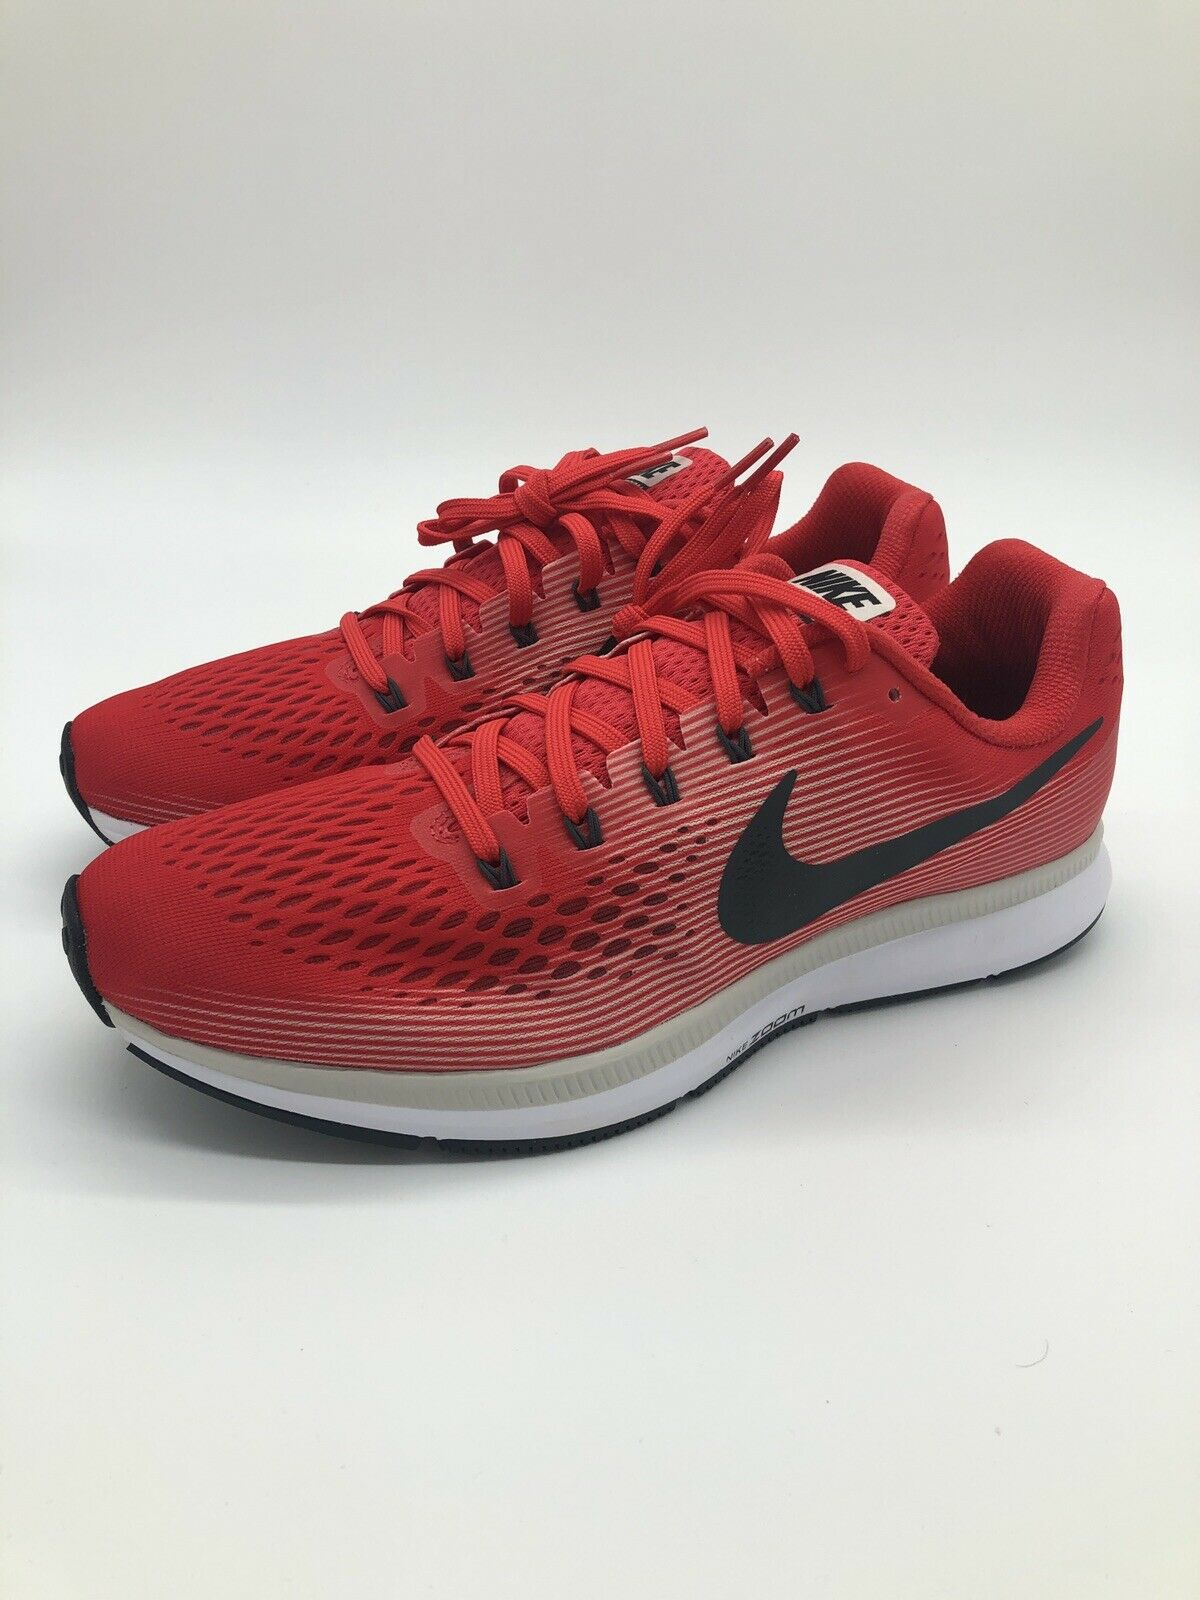 Nike Air Zoom Pegasus 34 - SIZE 8.5 880555-602 Gym Red White Crimson